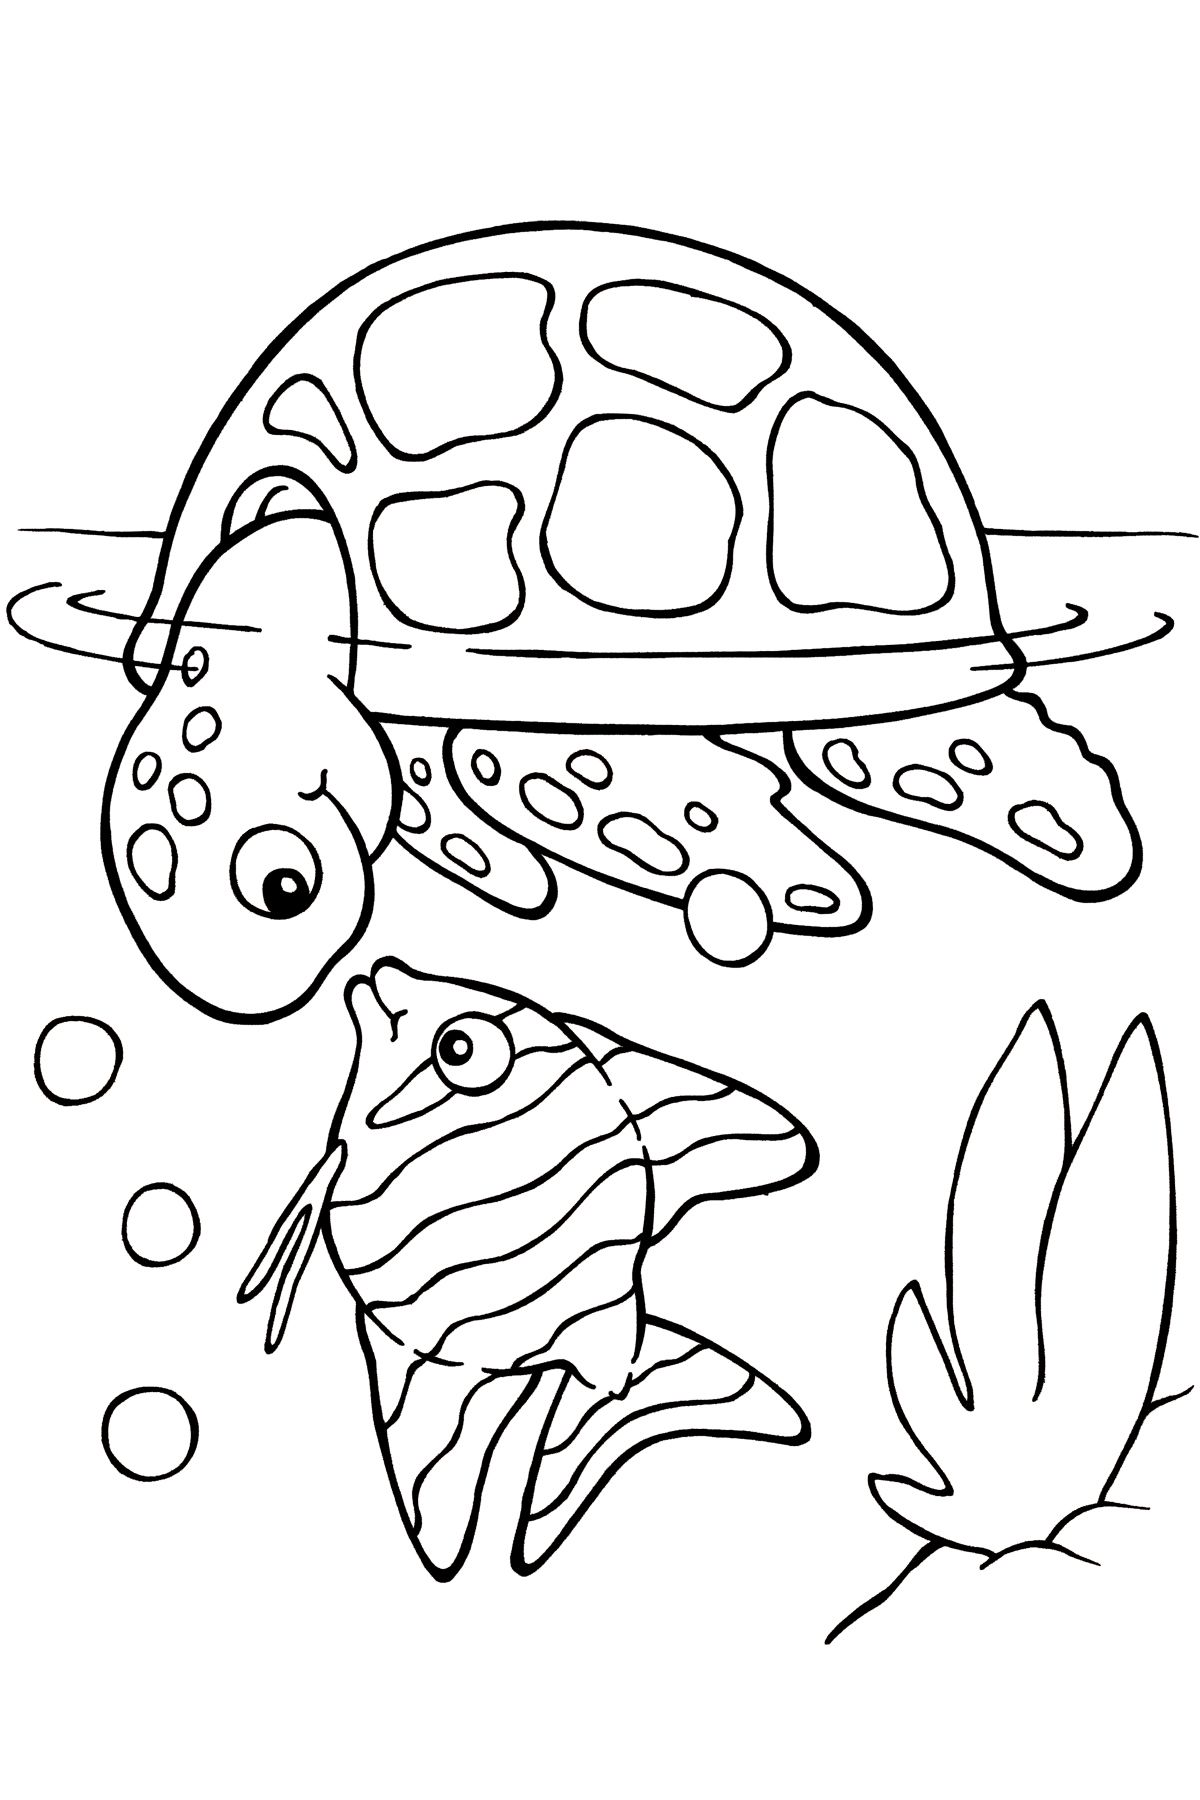 coloring pages turtle # 2